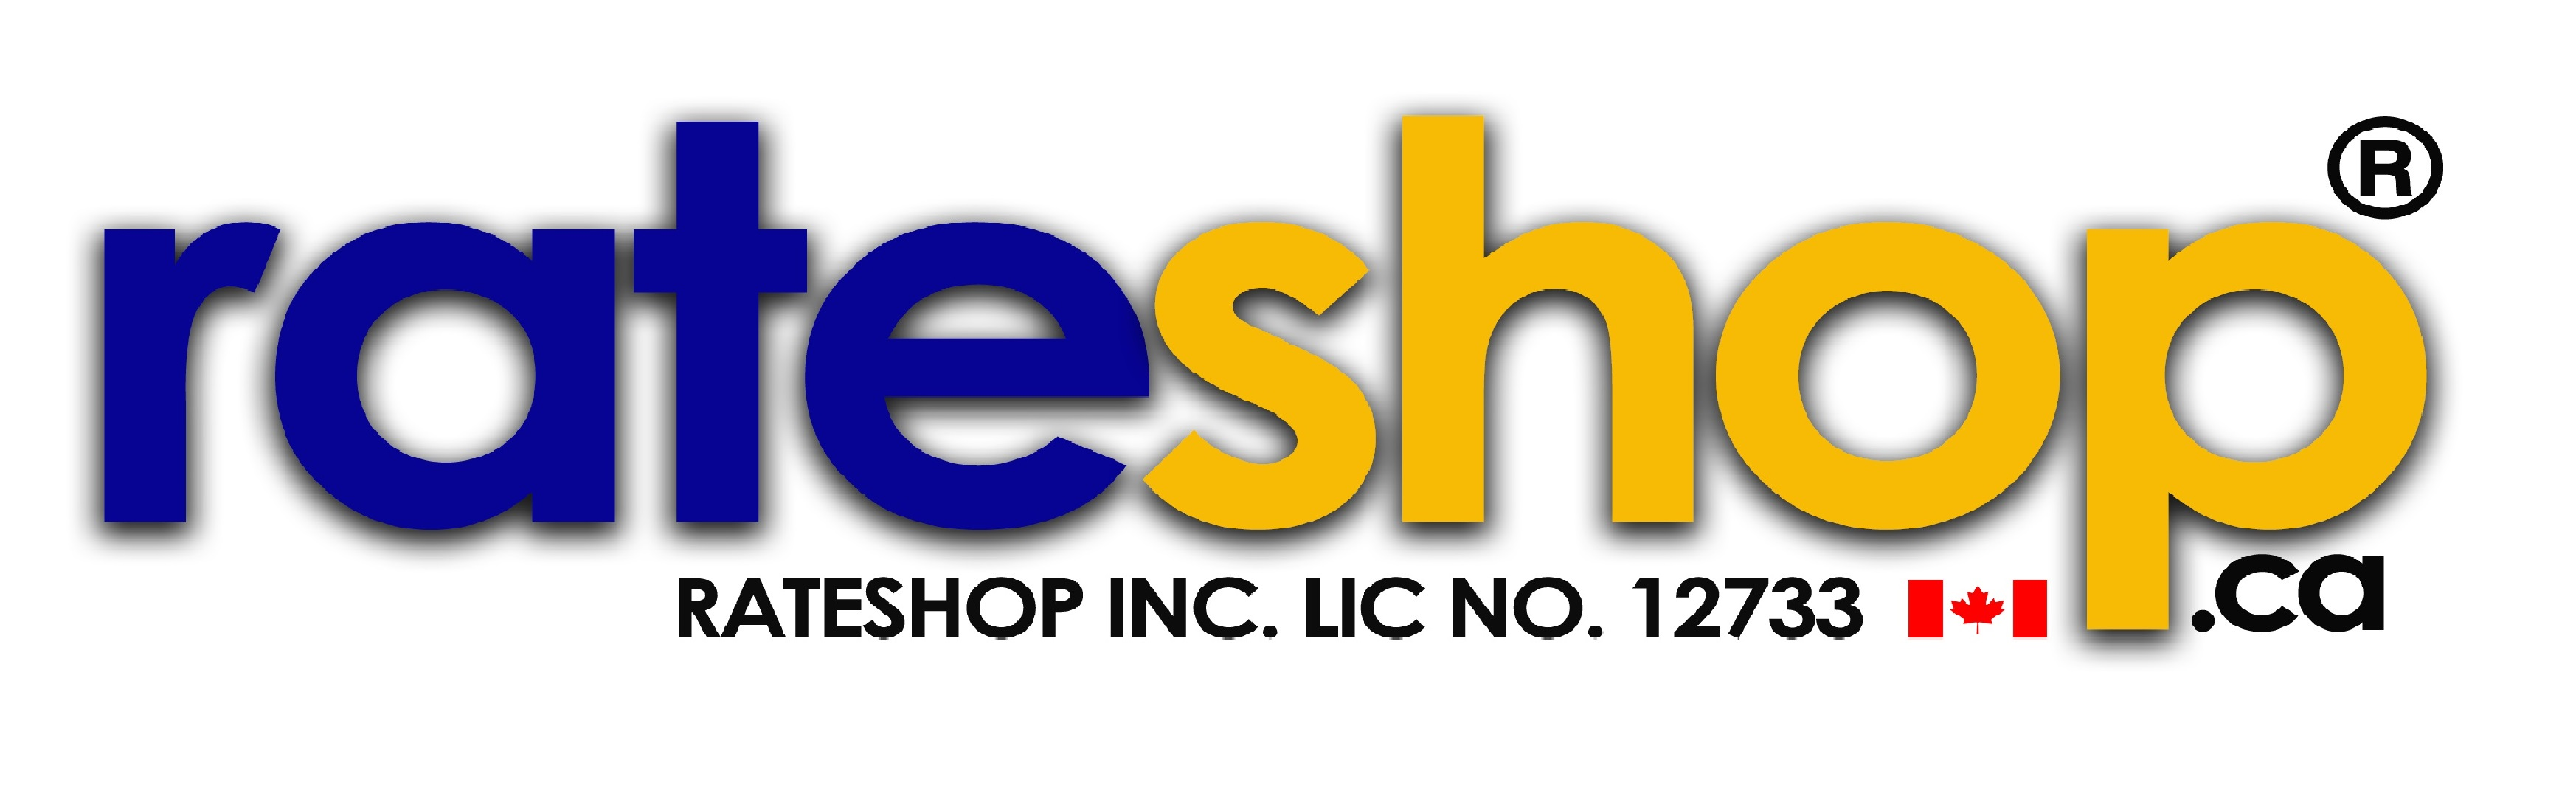 20200318100640-RATESHOP LOGO LARGE TRANSPARENT- feb 2018.jpg